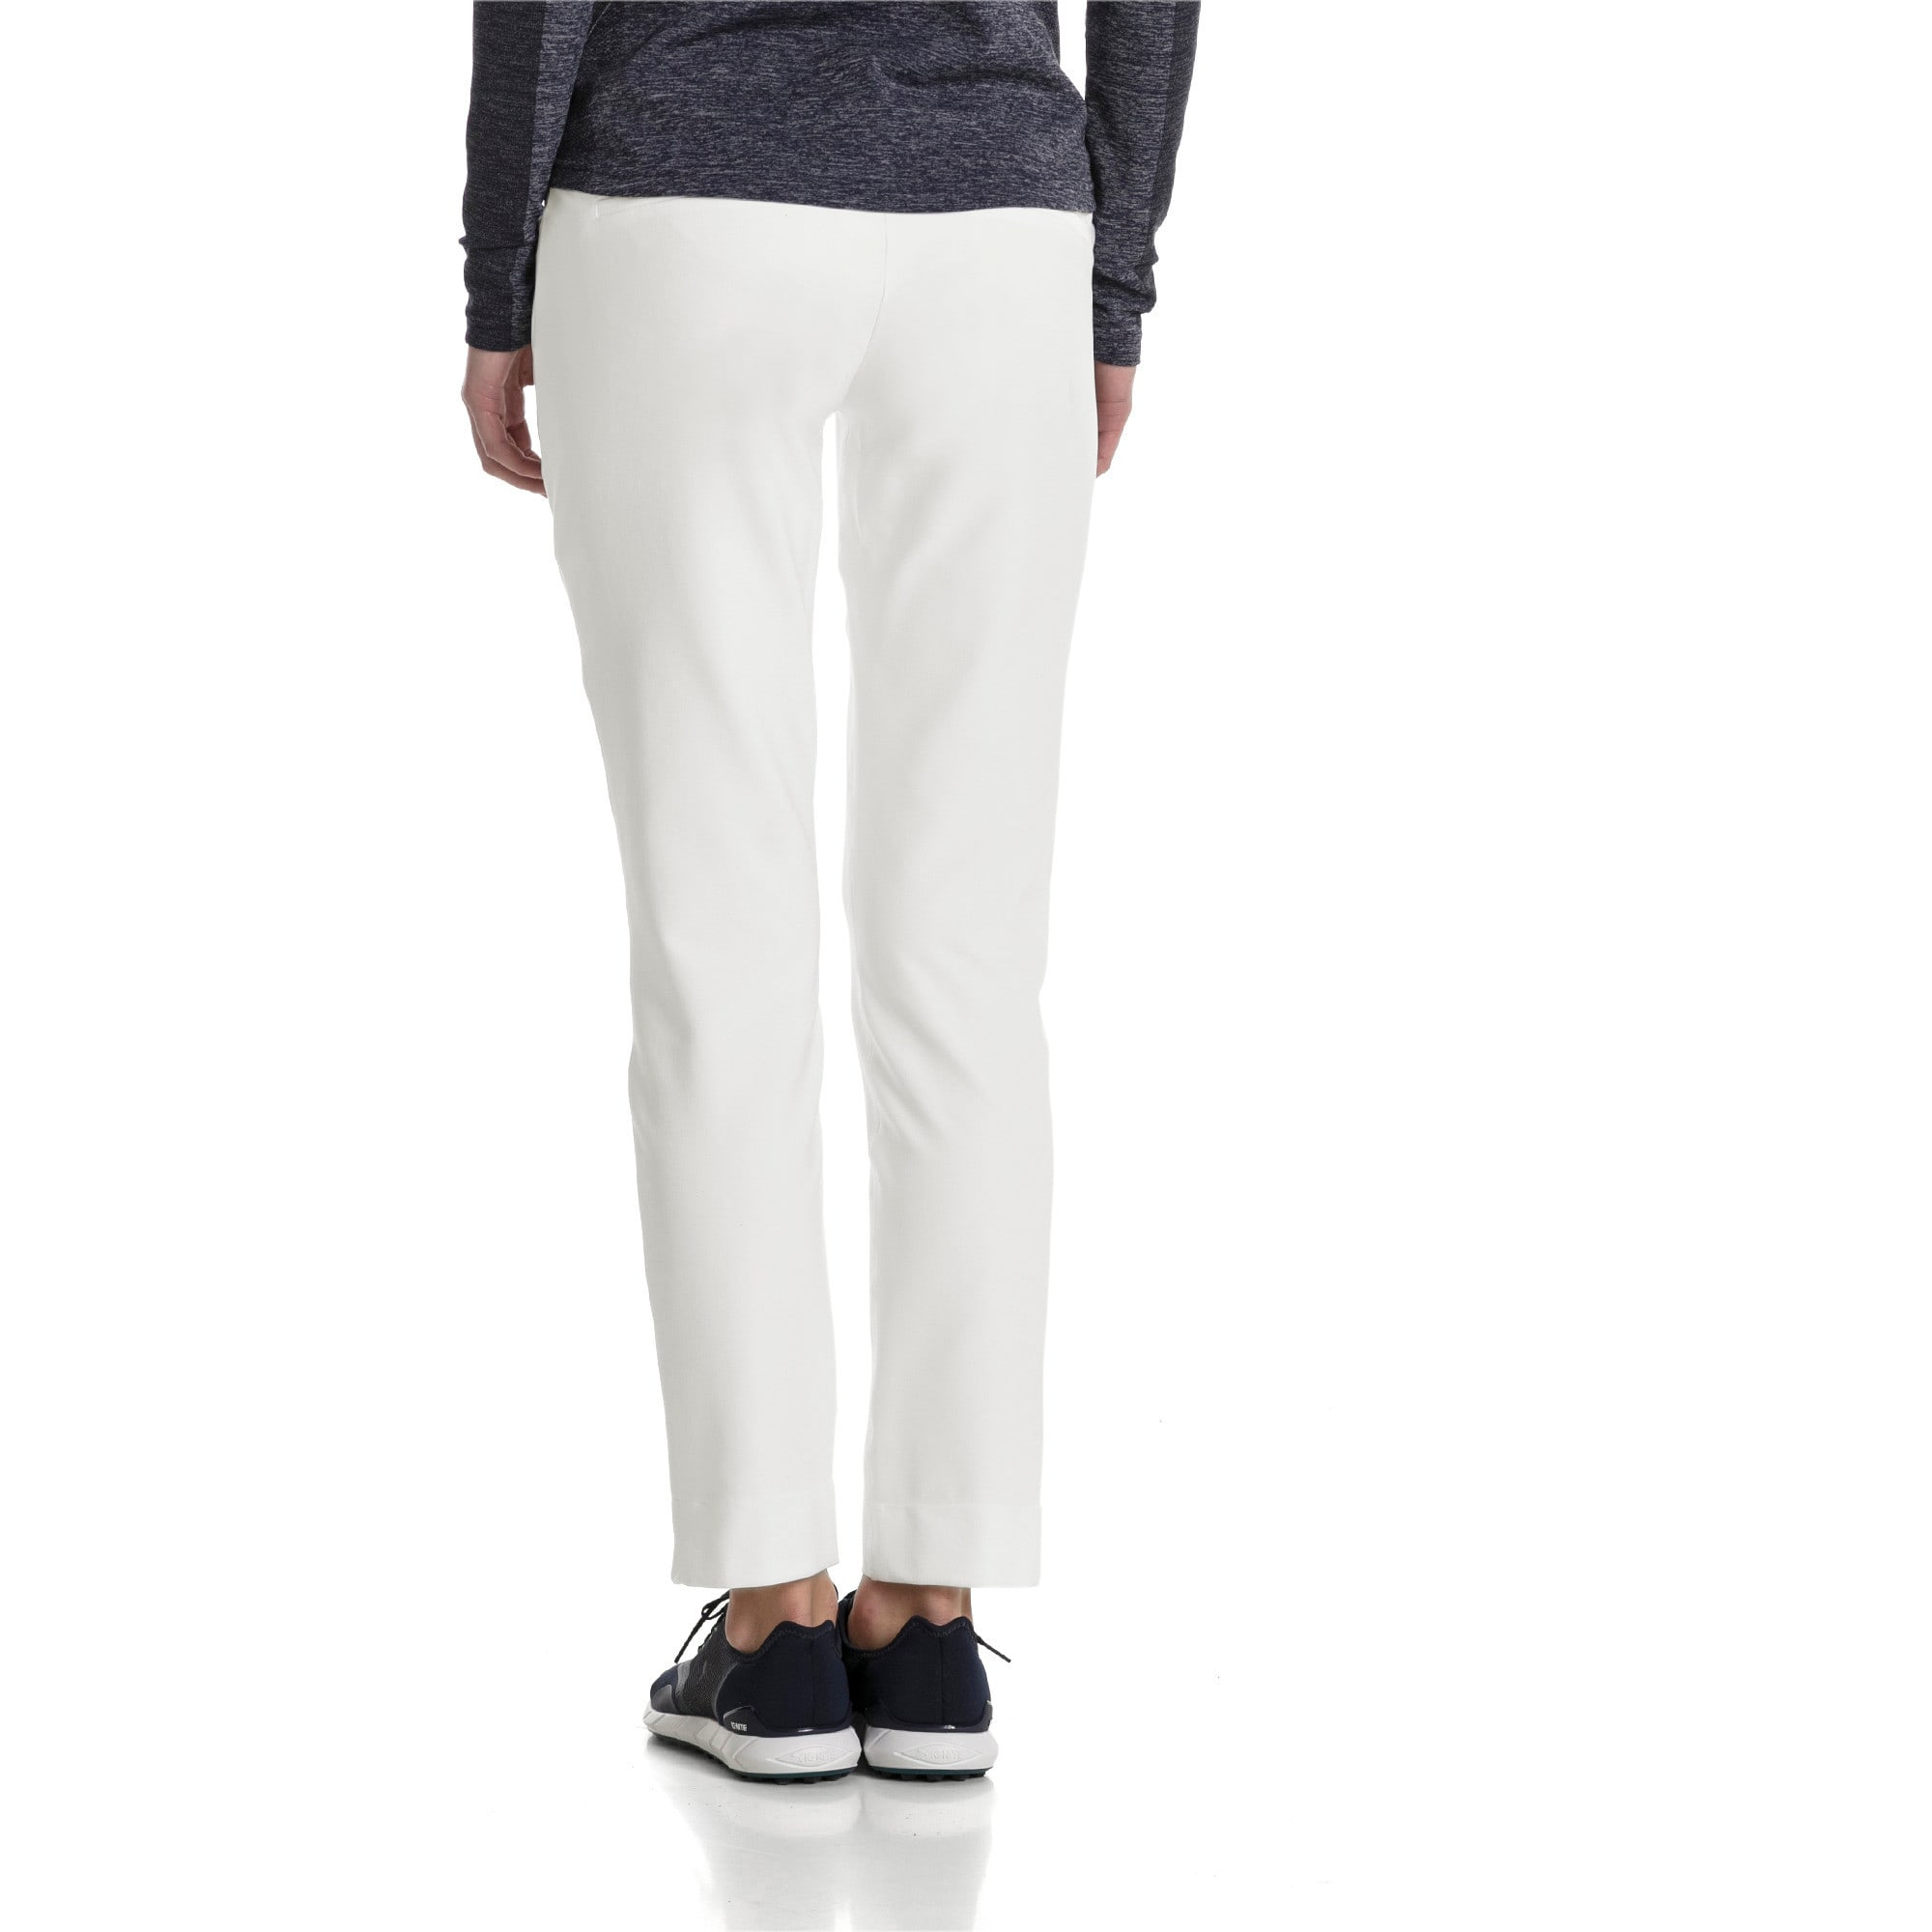 Golf Women's PWRSHAPE Pull On Pants, Bright White, large